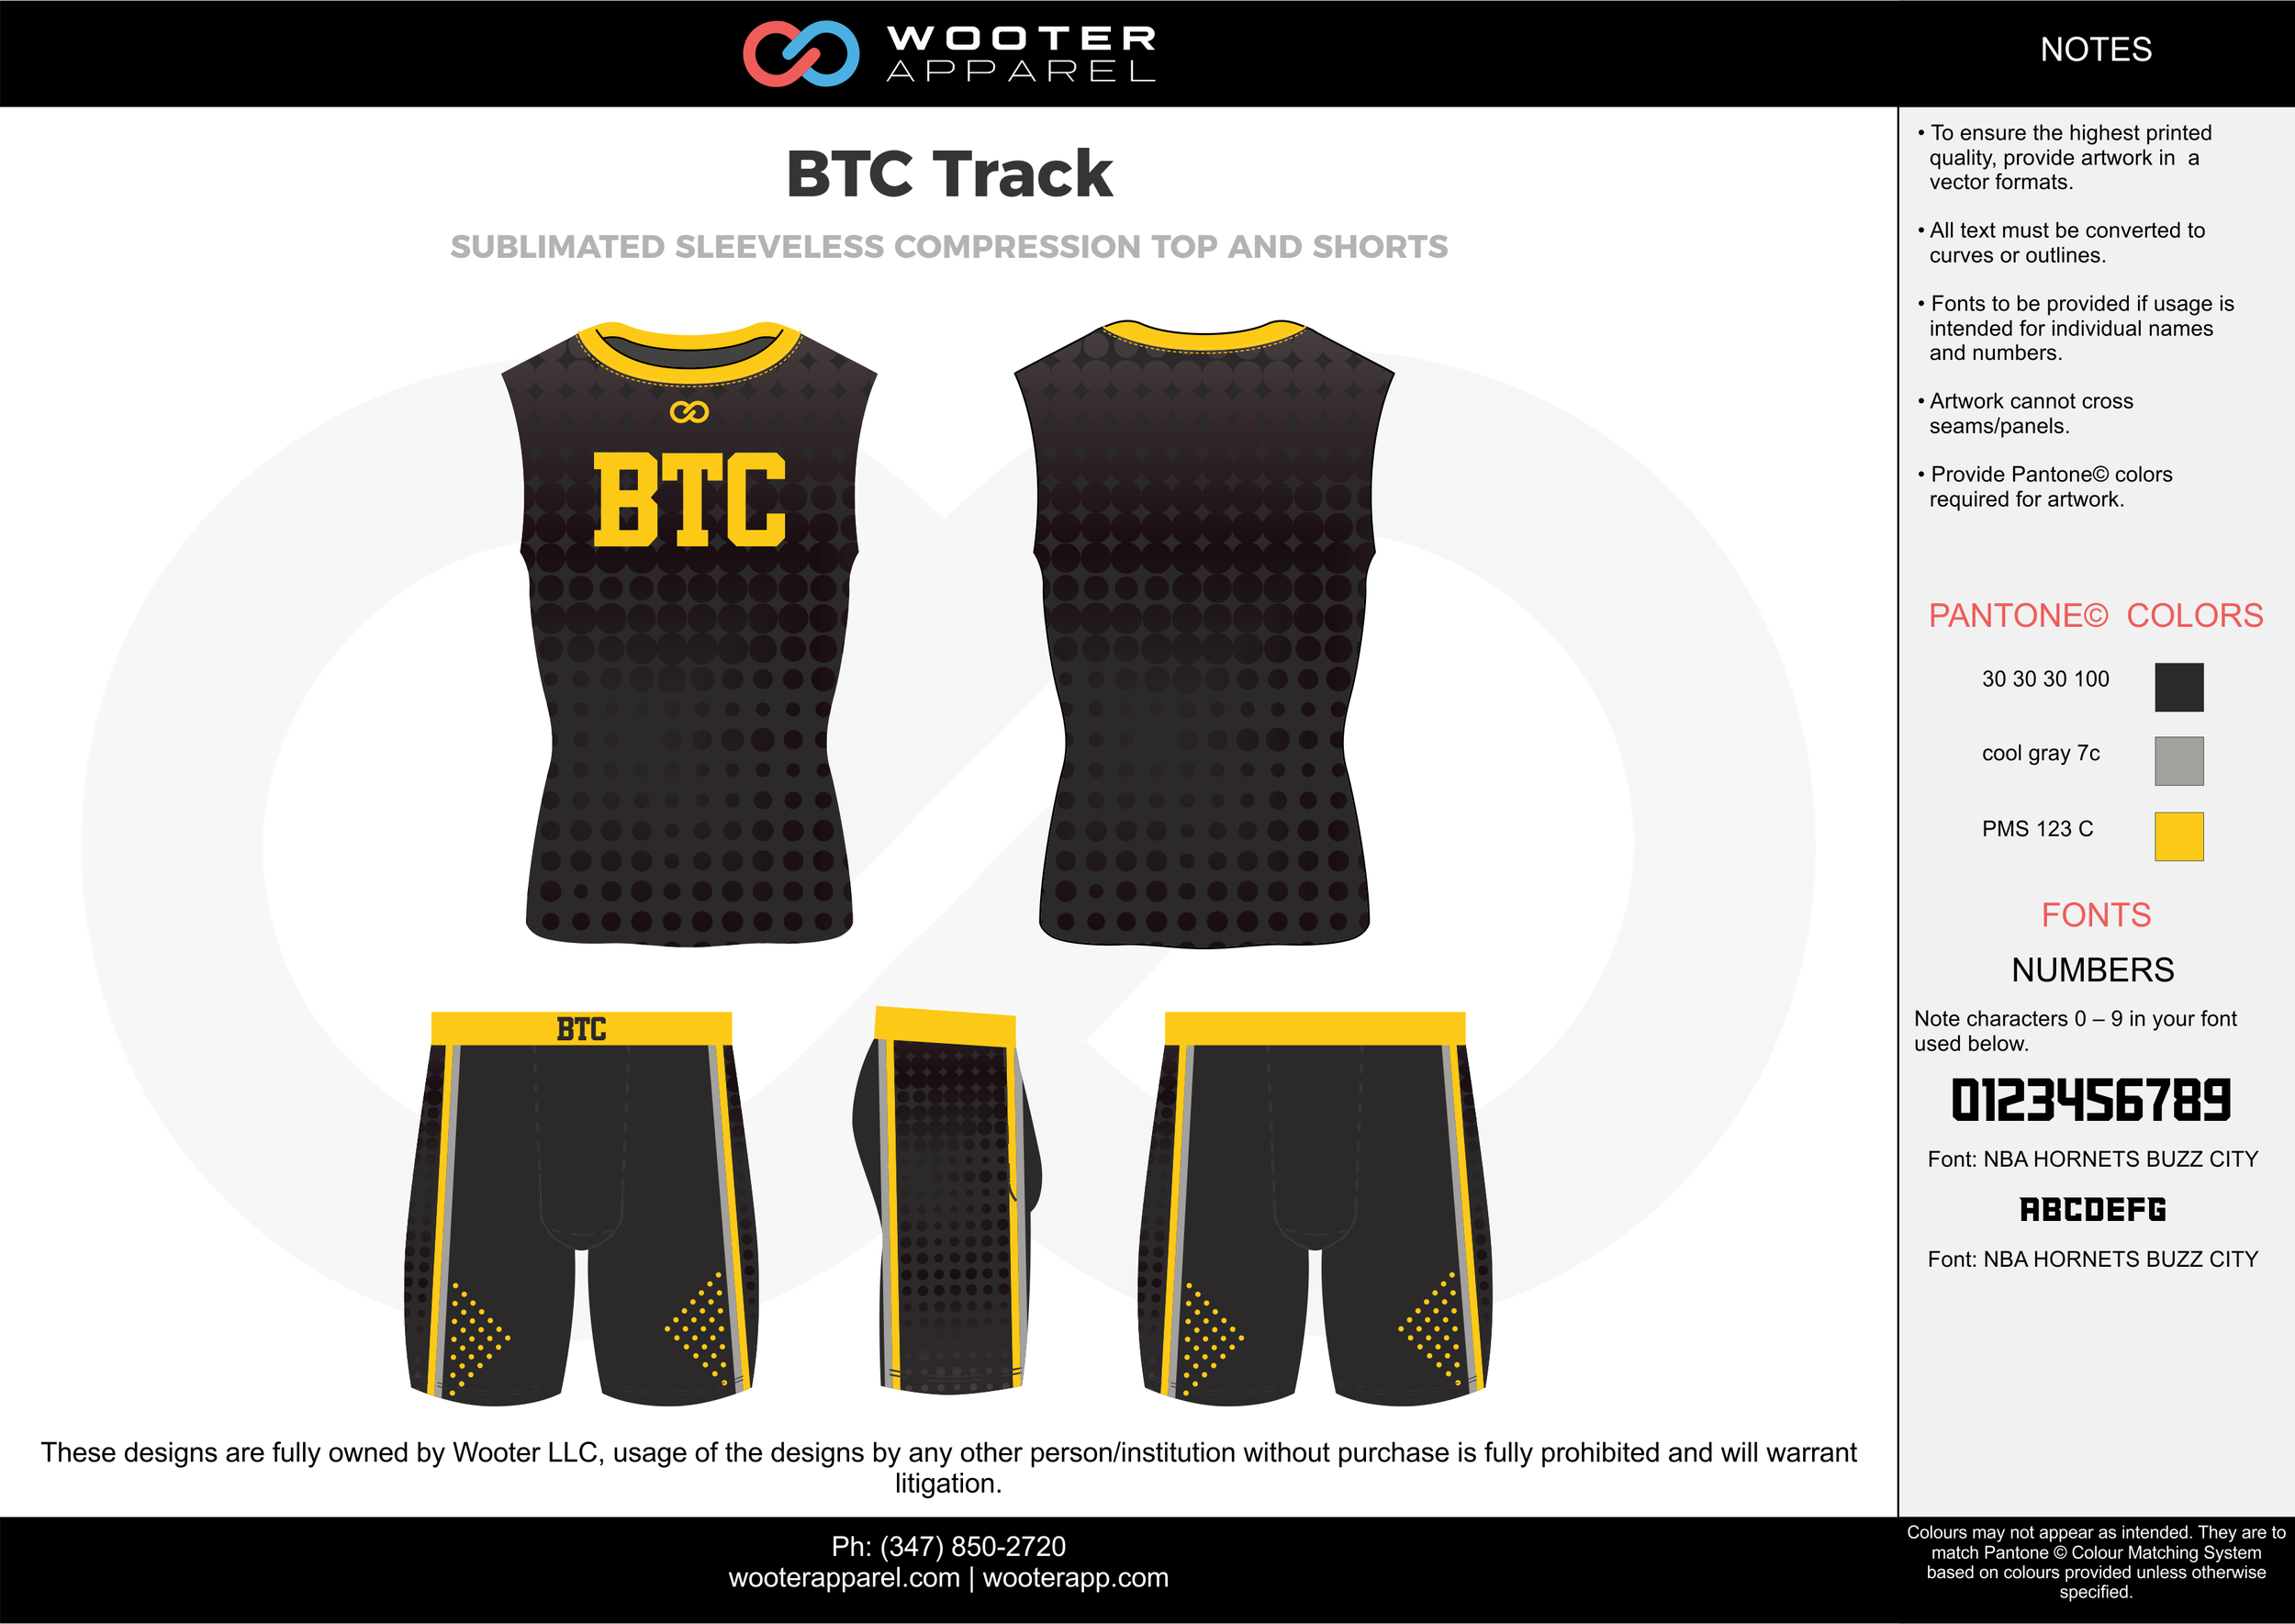 BTC Track Black Gray and Yellow Sublimated Compression Track Uniforms Sleeveless Shirts and shorts